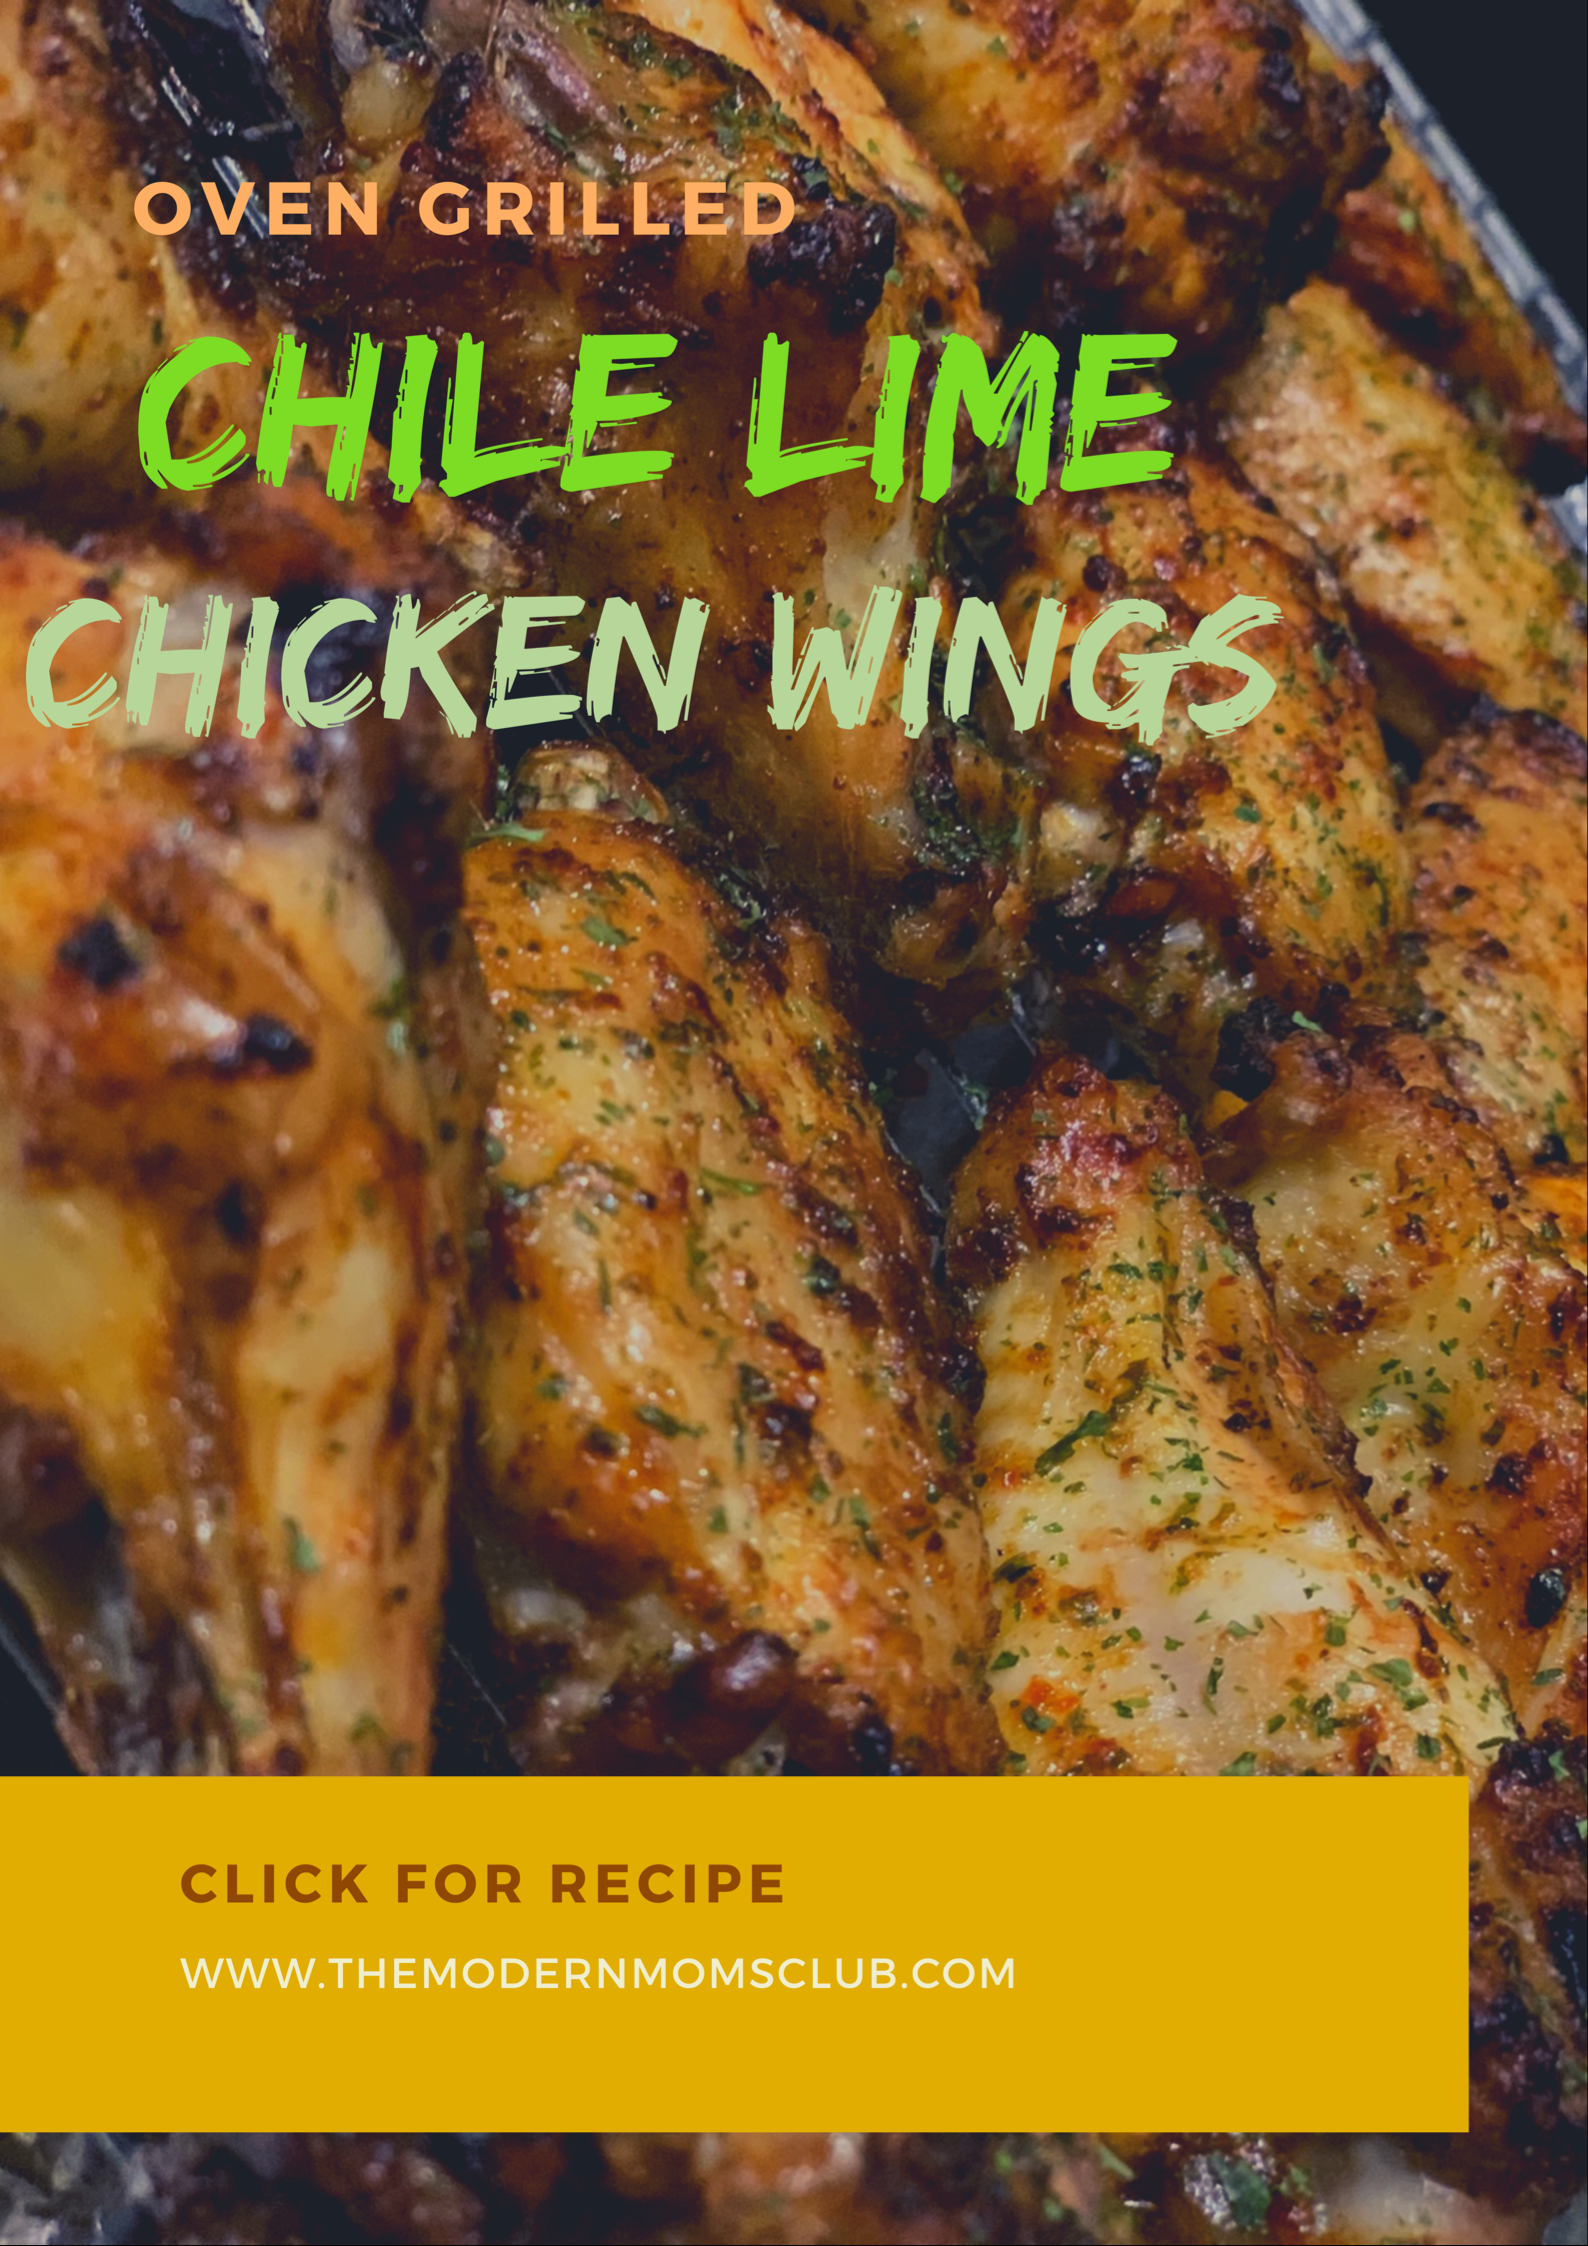 Oven grilled Chile like chicken wings #chickenwings #food #partysnacks #chilelimechicken